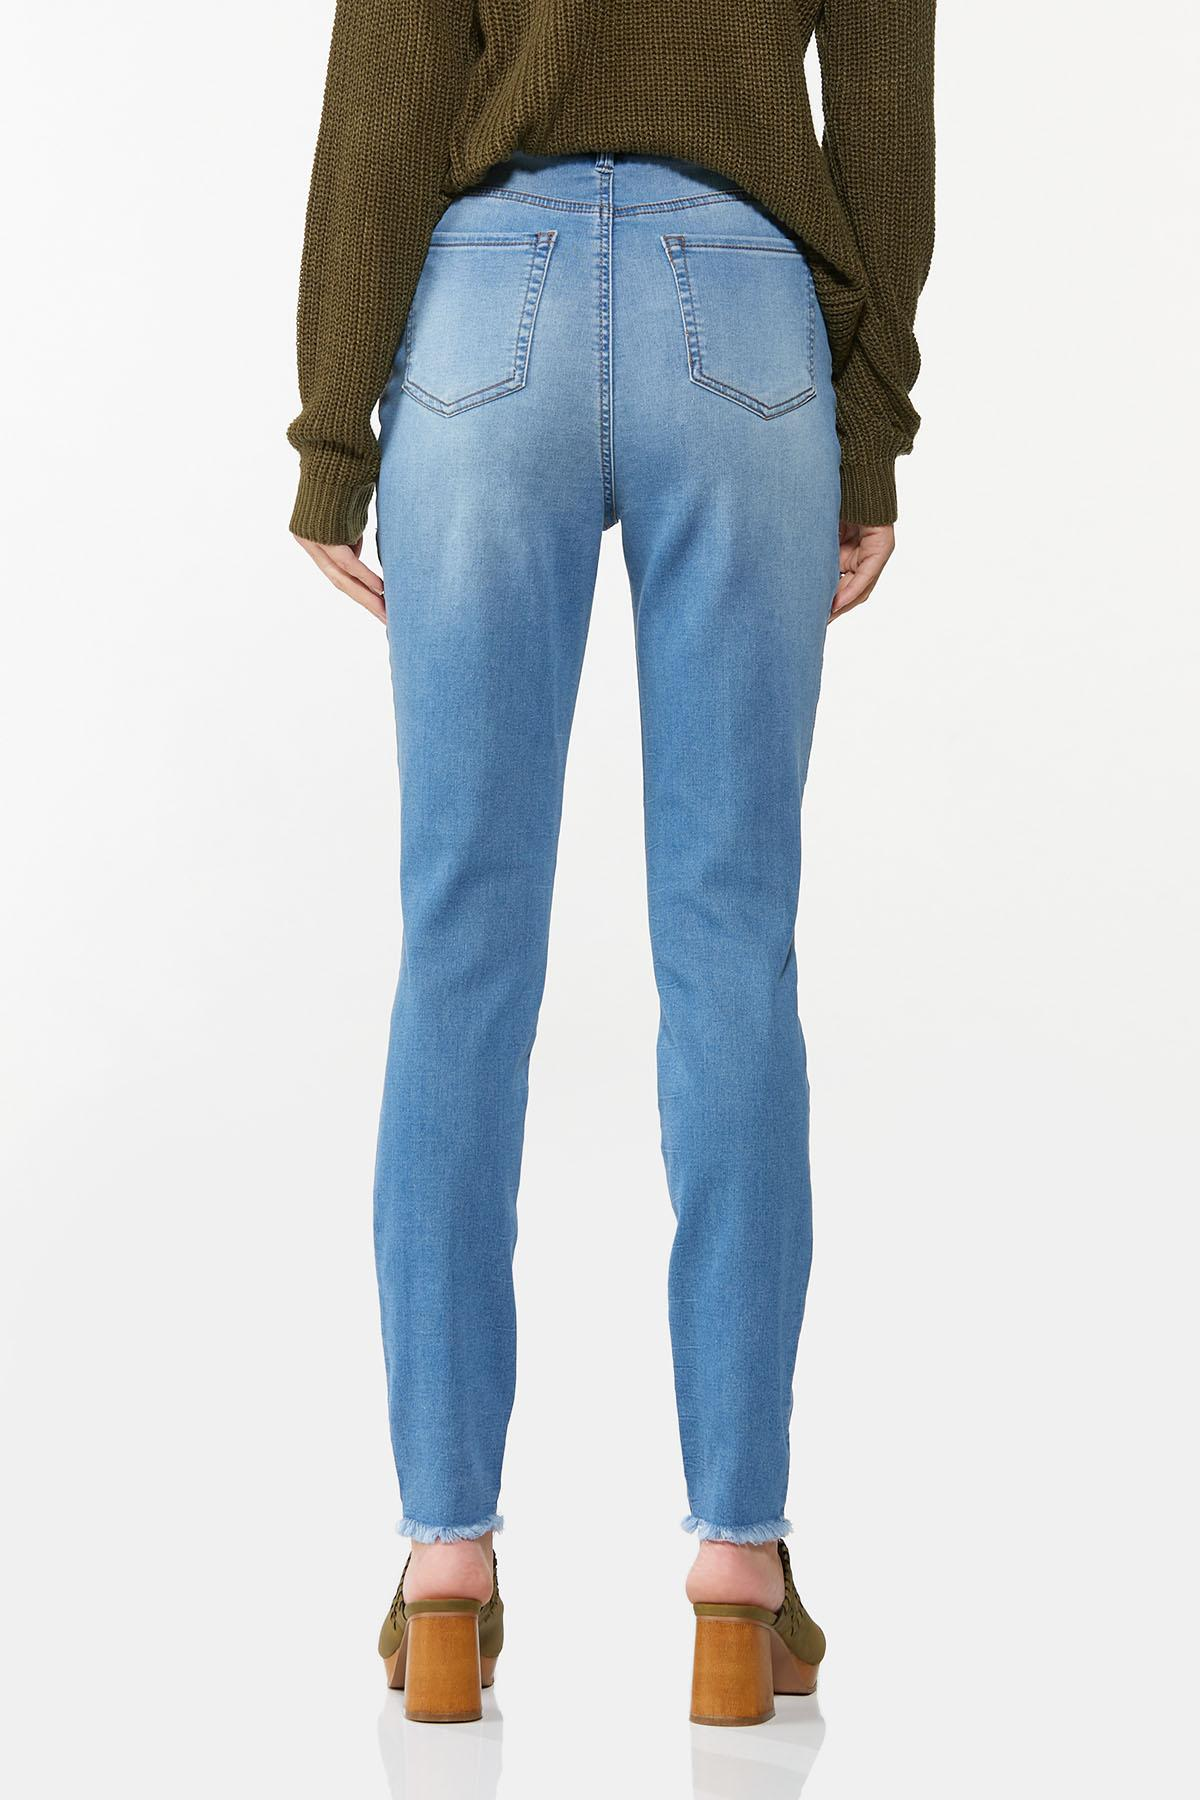 Frayed Button Fly Jeans (Item #44668161)